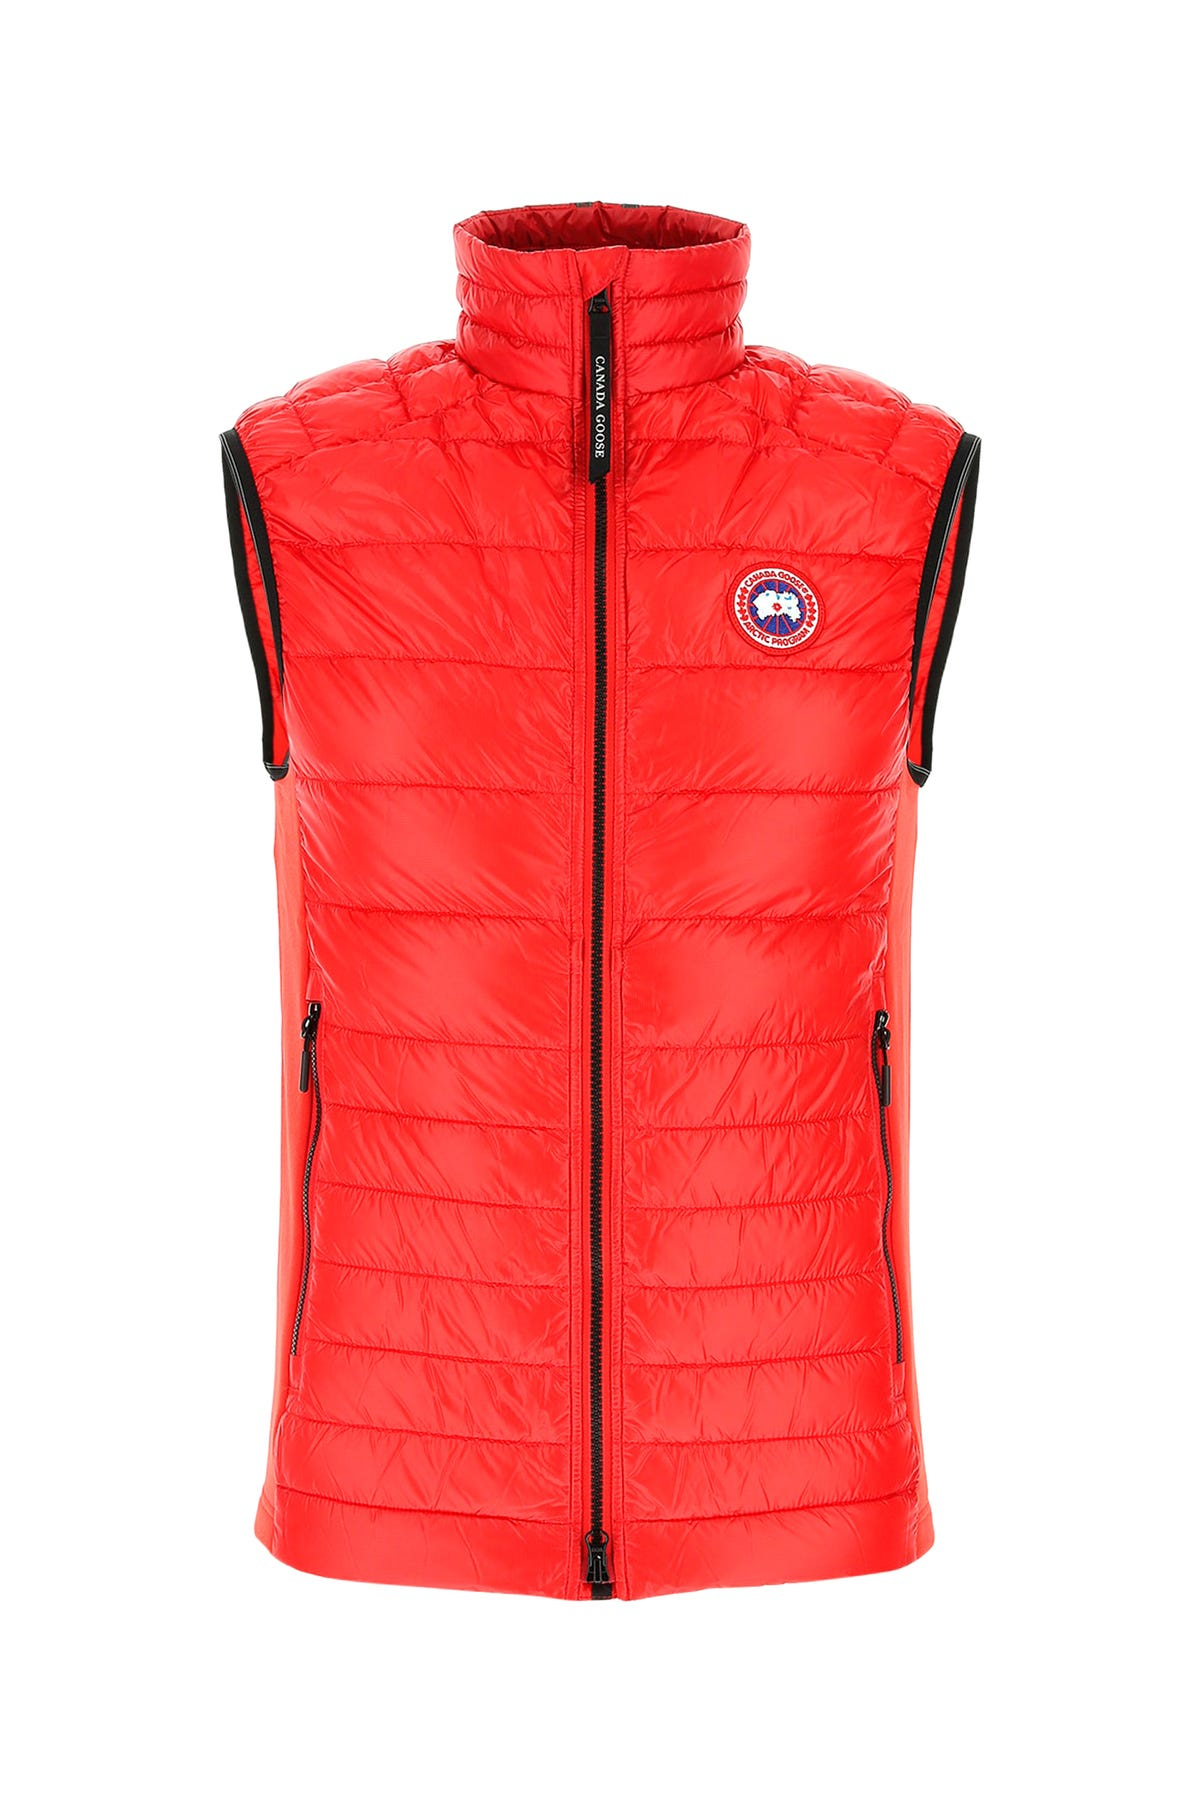 Canada Goose RED NYLON HYBRIDGE LITE SLEEVELESS DOWN JACKET   RED CANADA GOOSE UOMO L